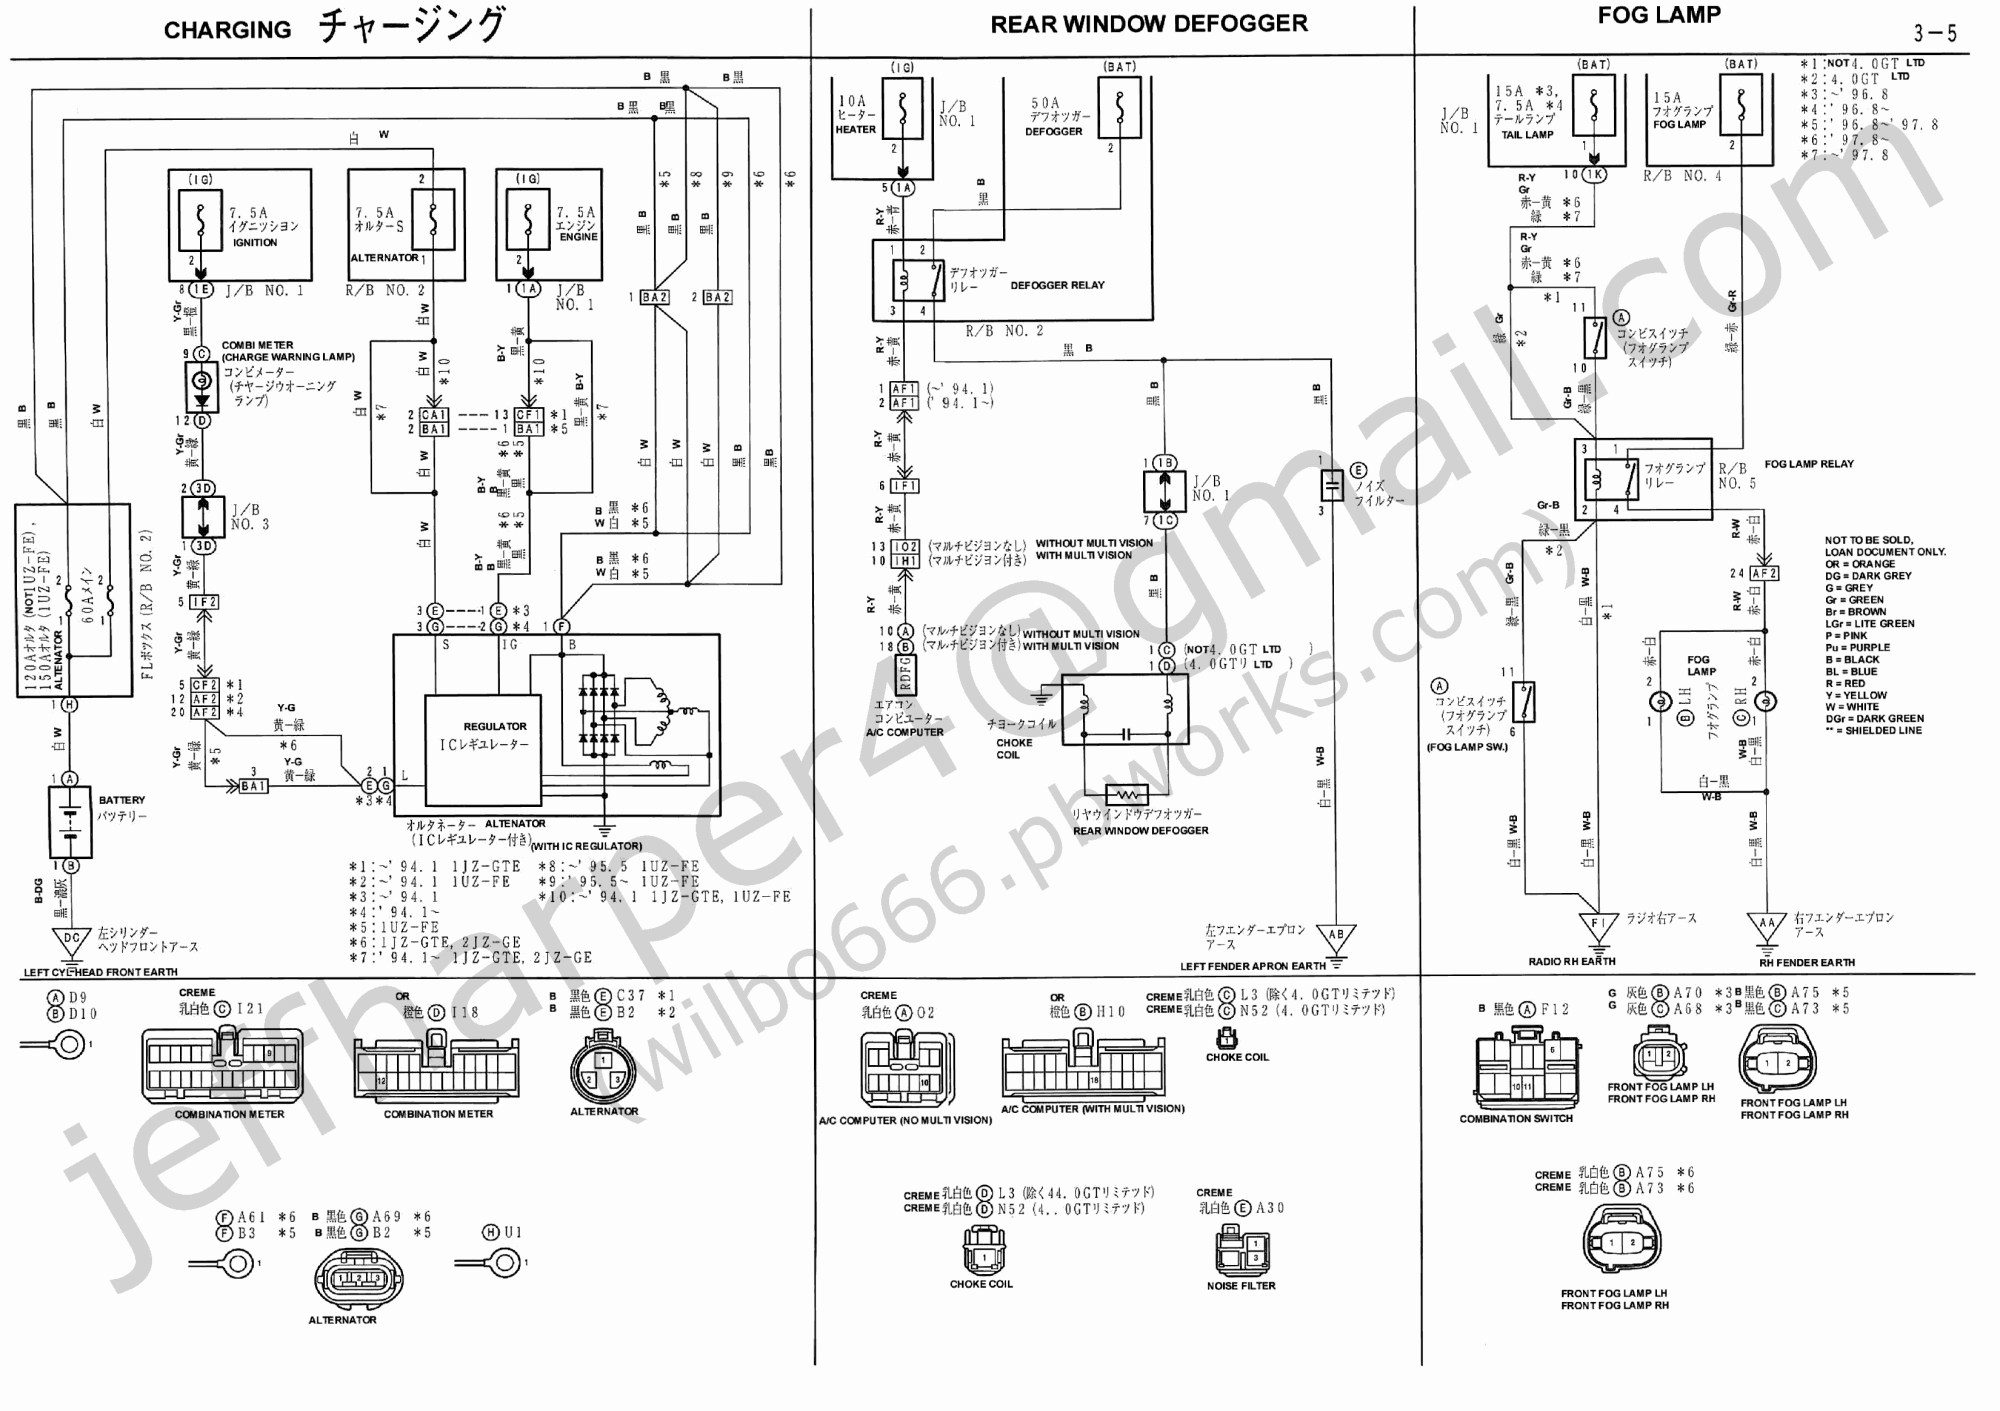 hight resolution of tender 6466wx lionel train wiring diagram wiring diagram schema lionel tender wiring diagram